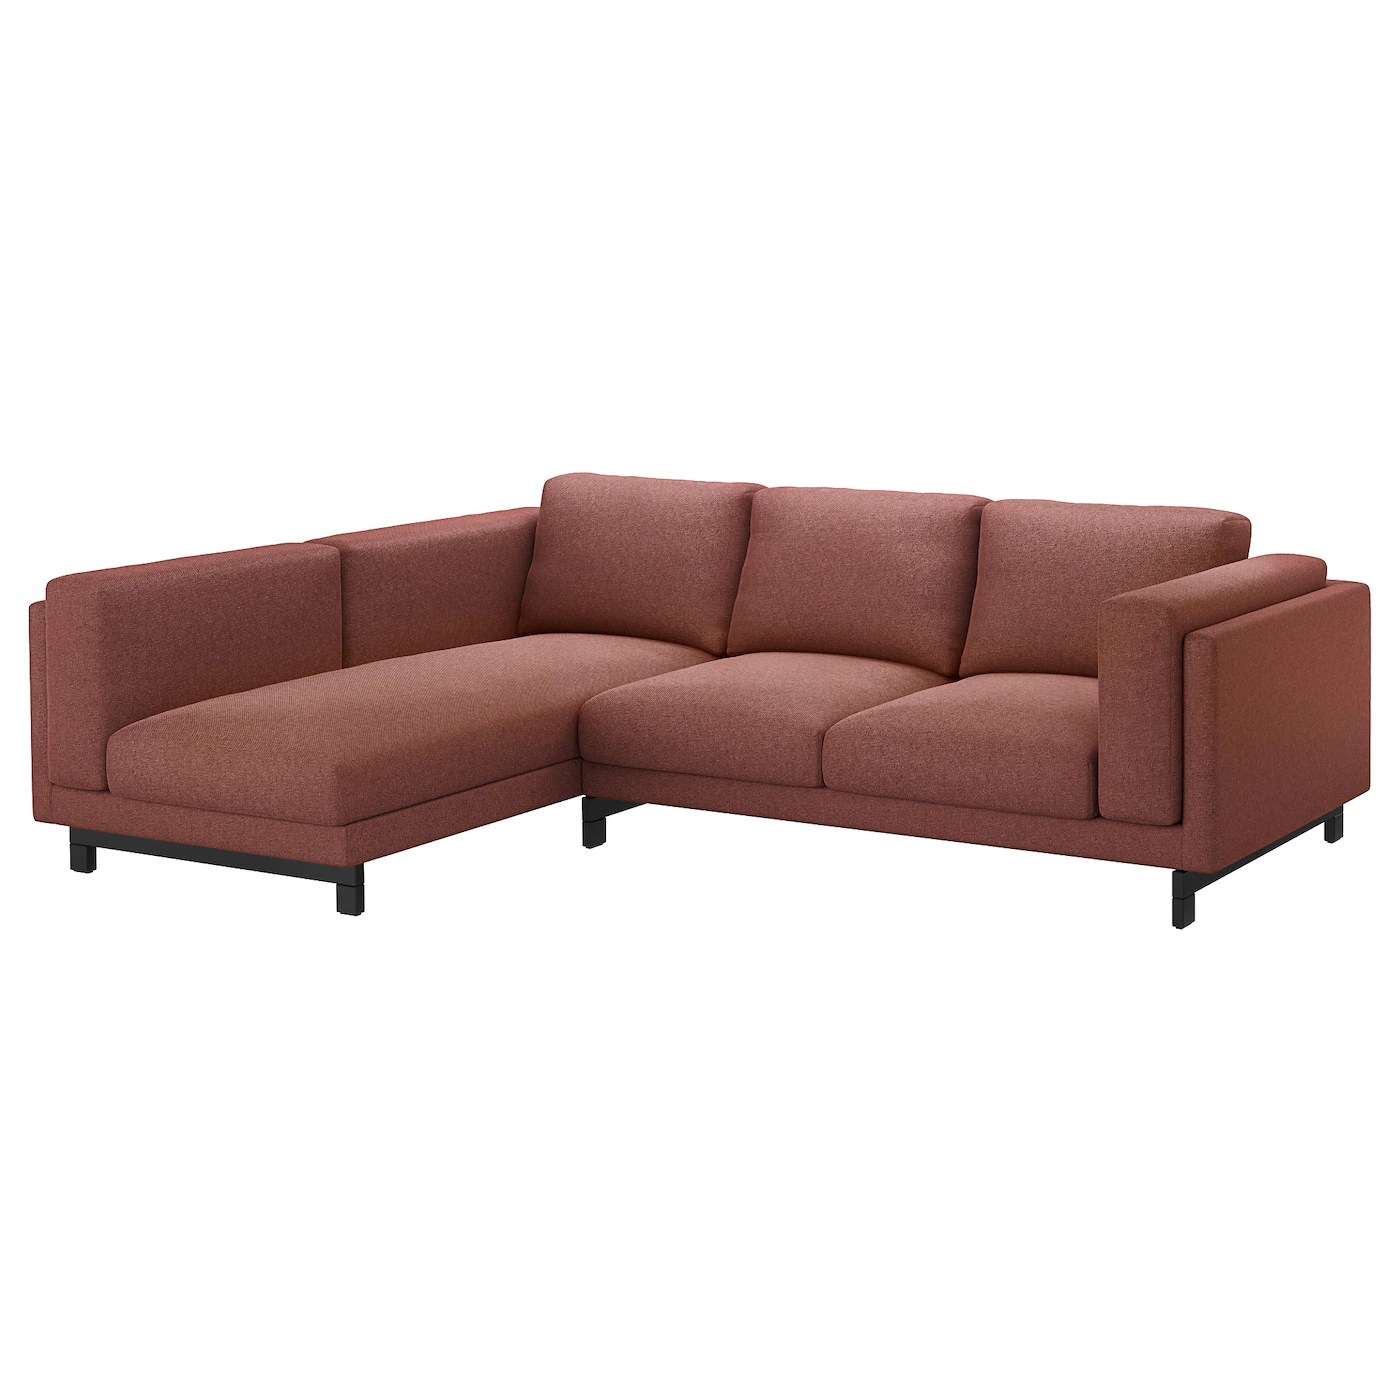 Ikea Nockeby Two Seat Sofa Nockeby Two Seat Sofa W Chaise Longue Left Tallmyra Rust